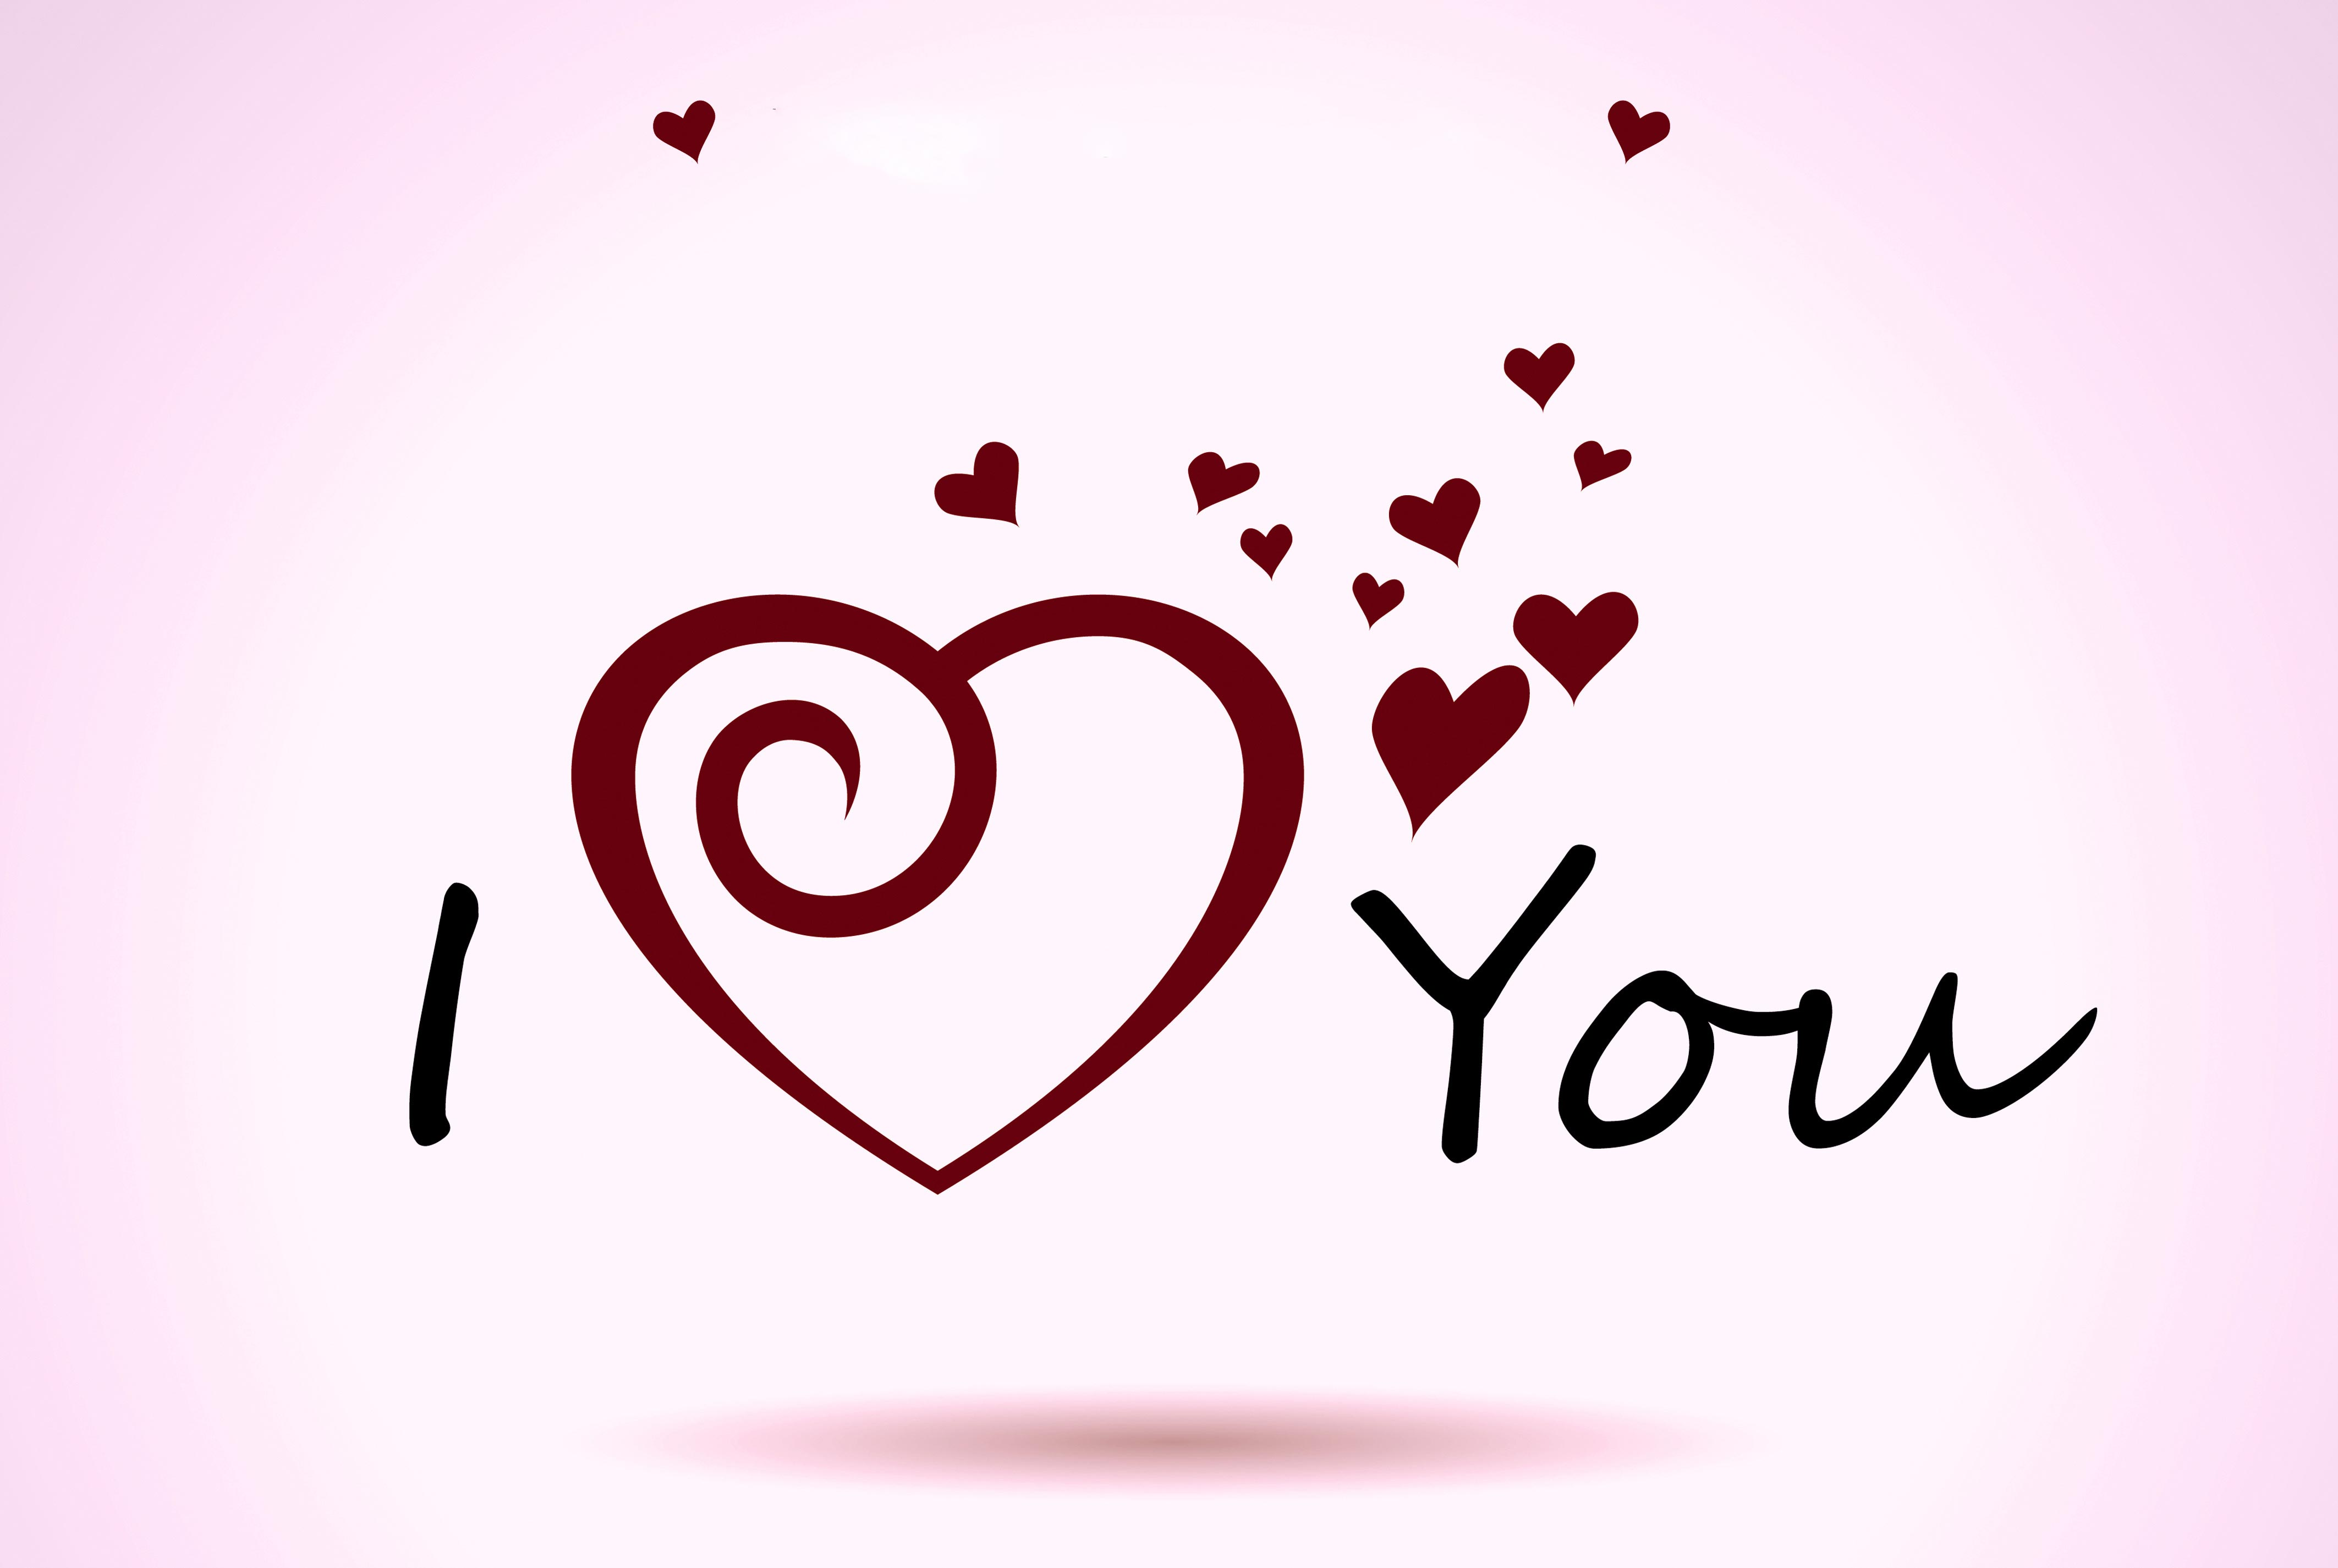 i love you aman wallpaper,heart,text,love,valentine's day,red